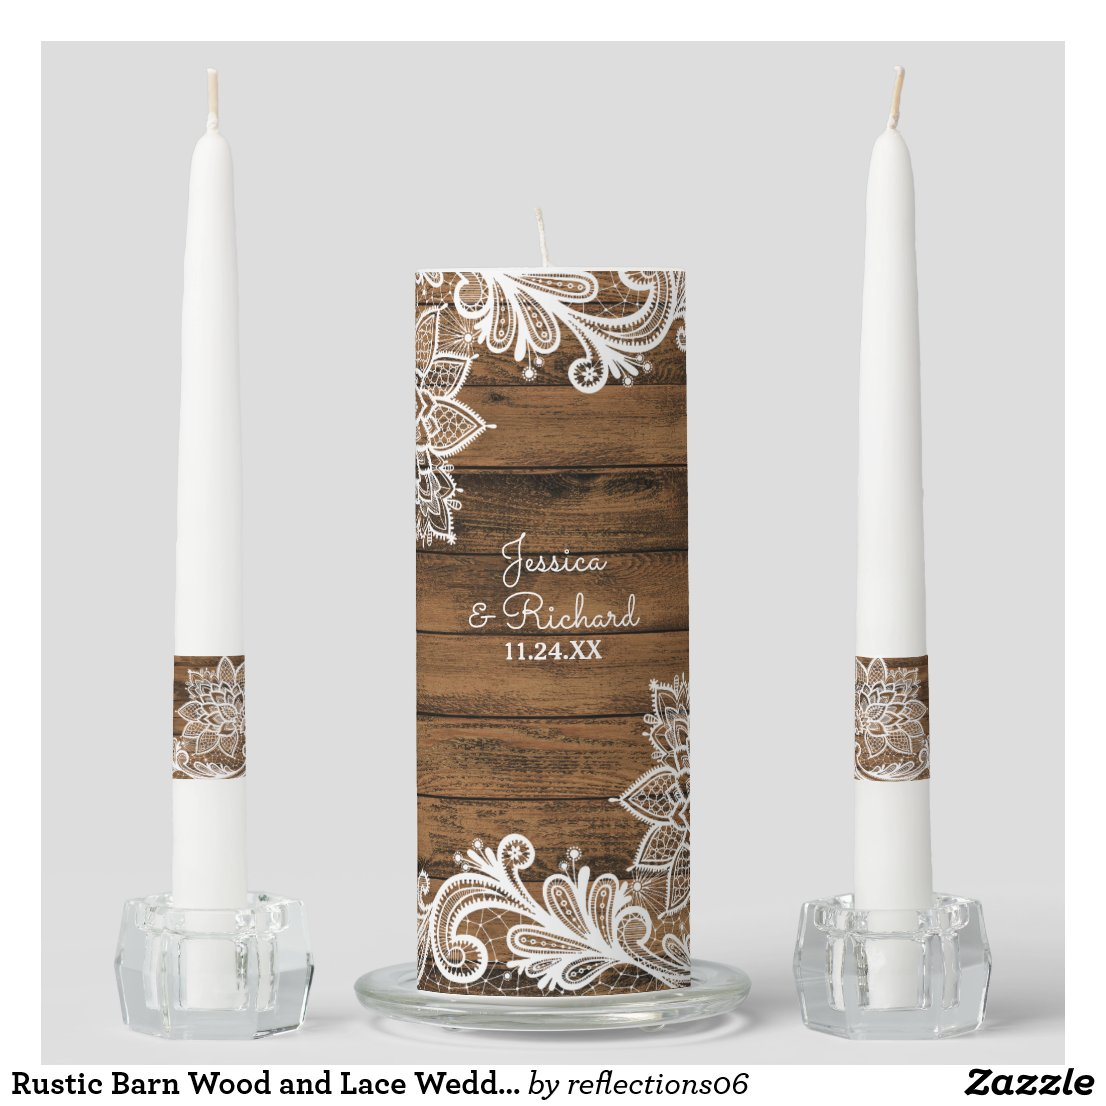 Rustic Barn Wood and Lace Wedding Unity Candle Set